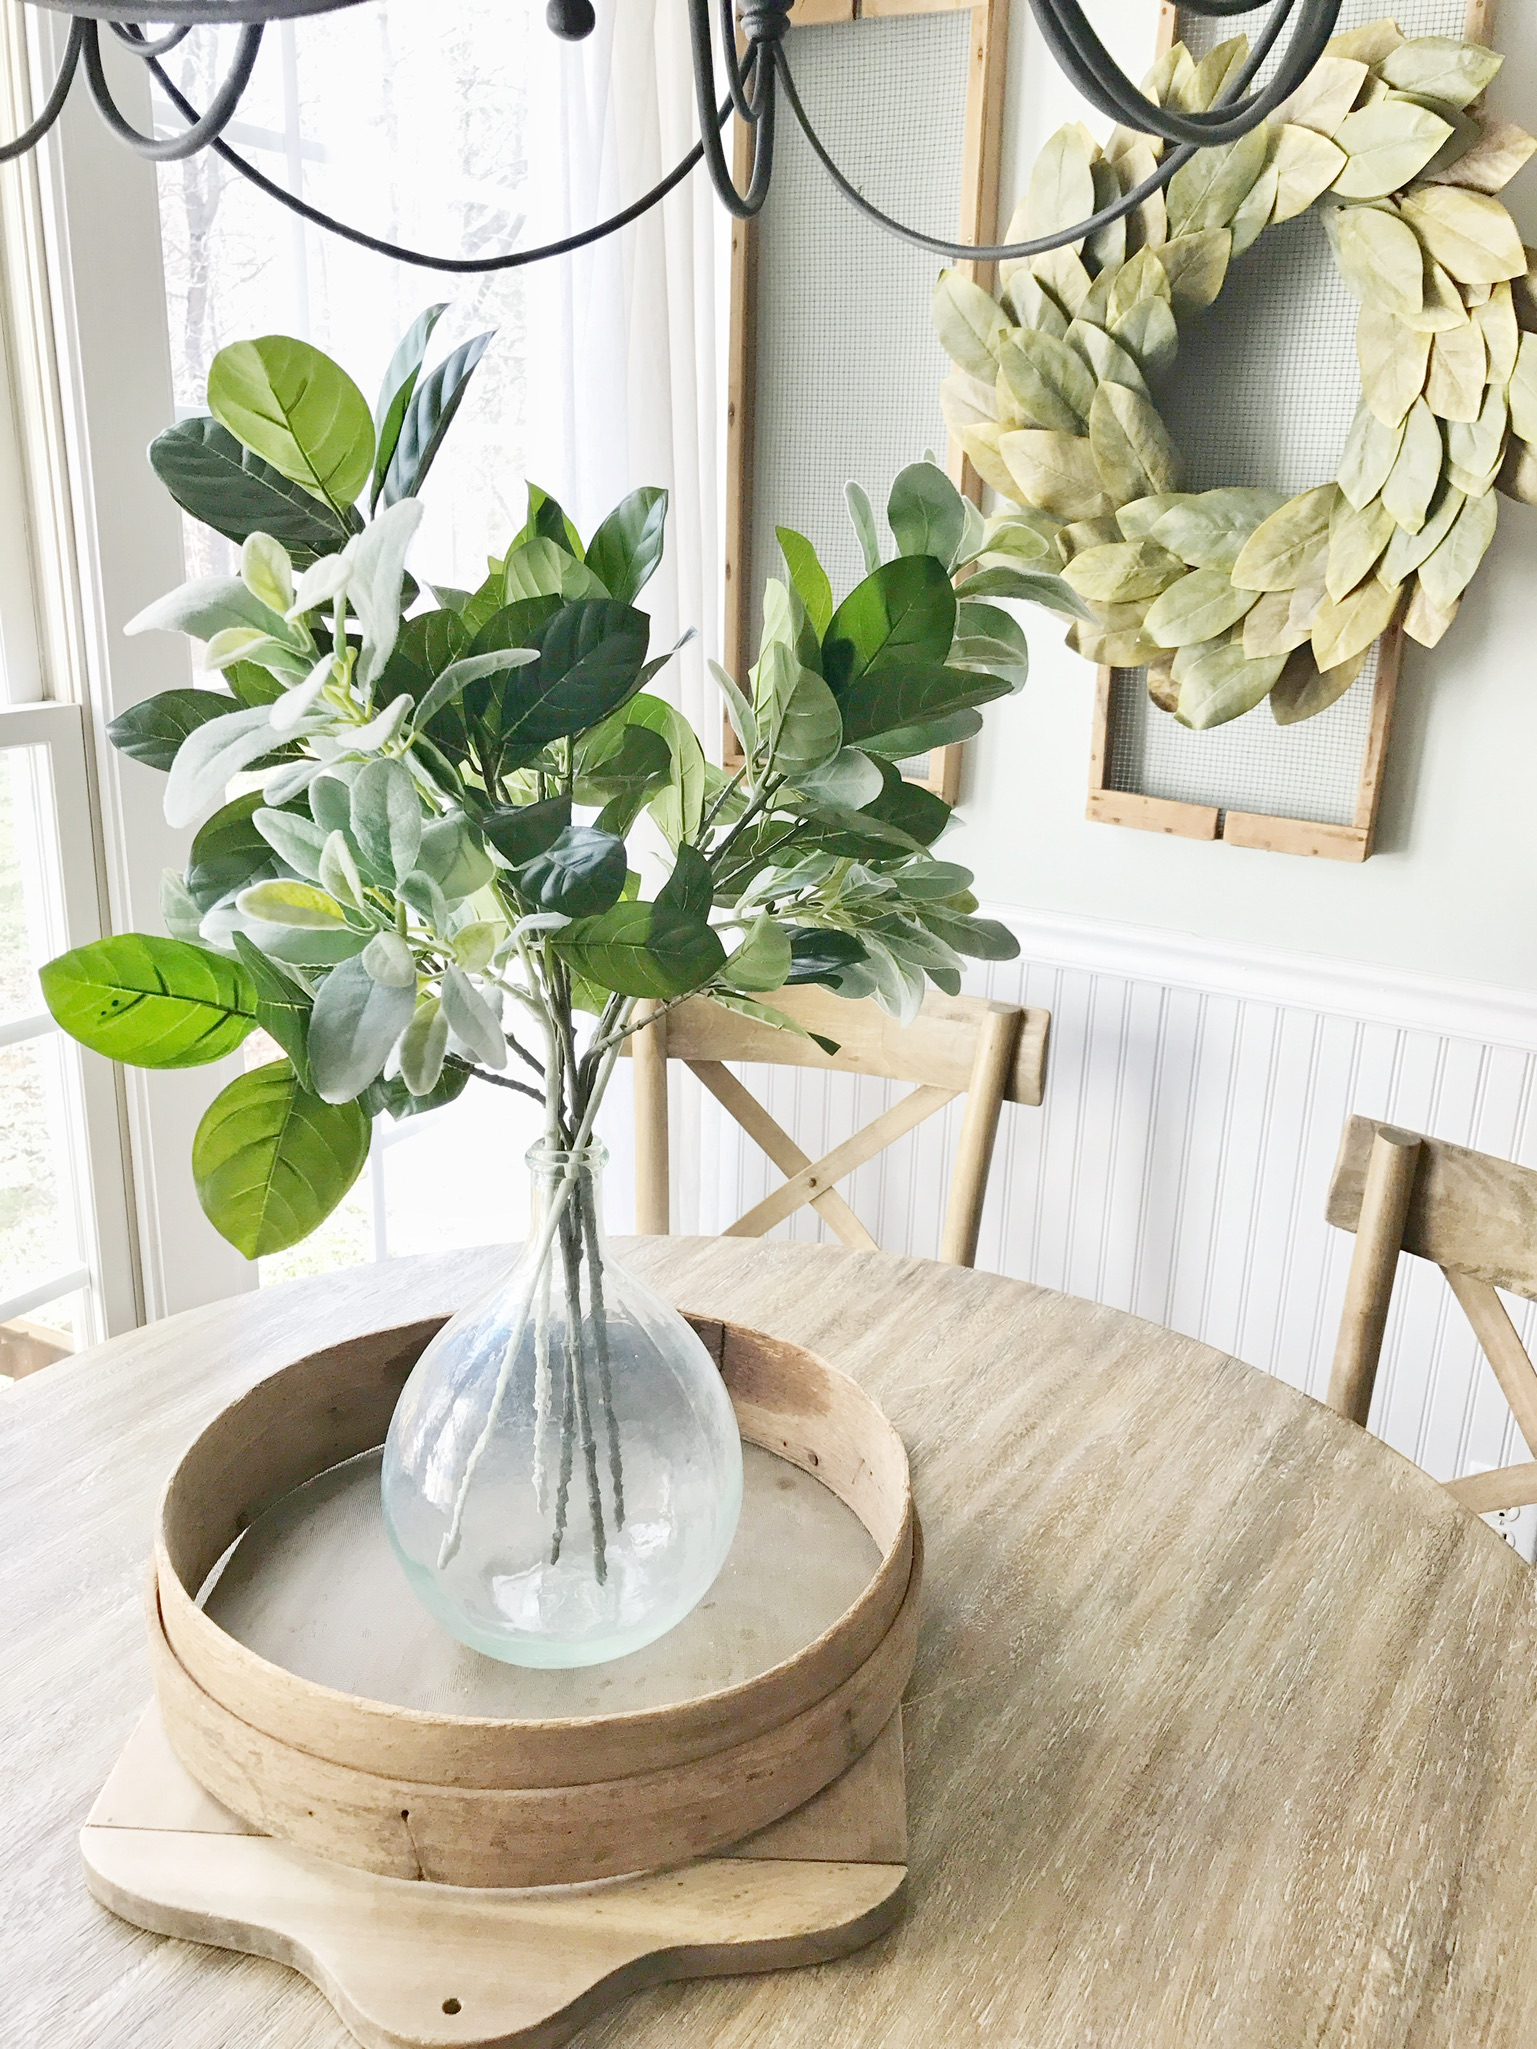 Neutral Decor Advice- How using Greenery Can Help You Transition Throughout the Year- By Plum Pretty Decor and Design